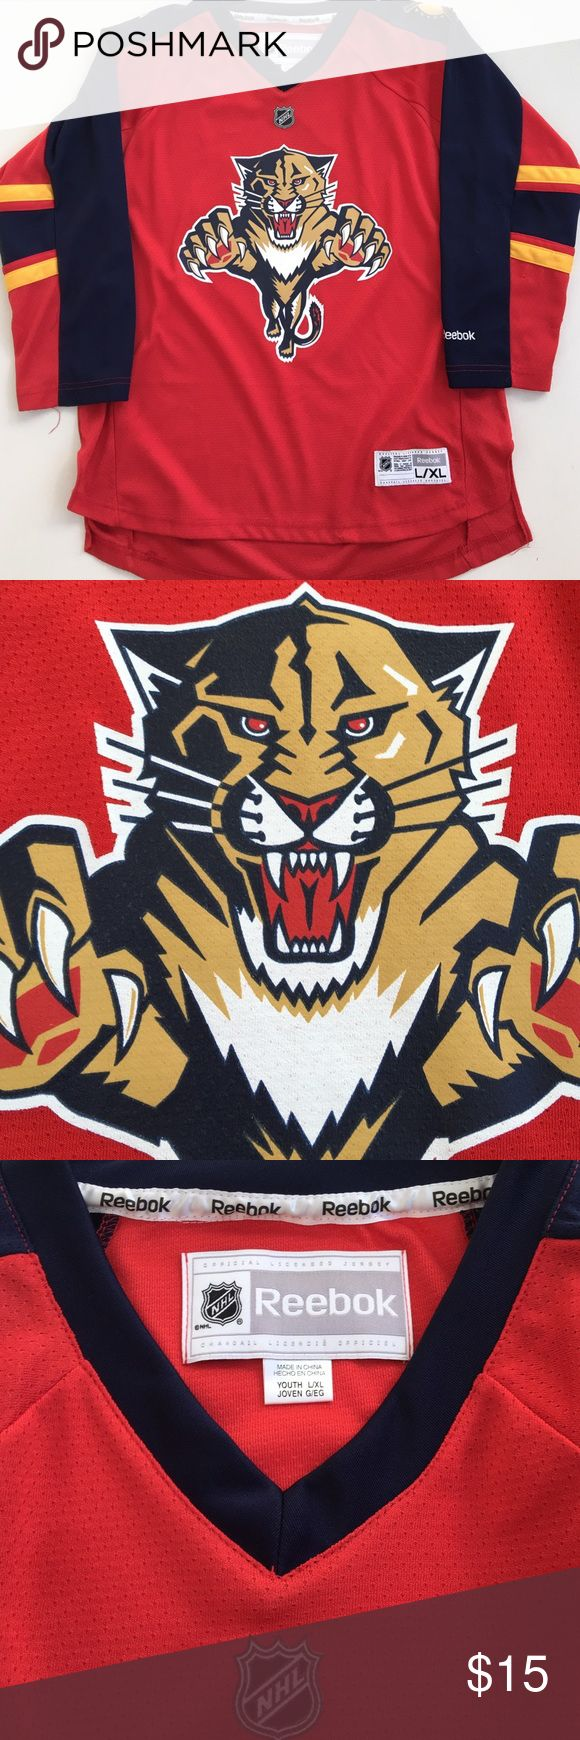 Youth NHL PANTHERS hockey jersey Size L/XL Youth PANTHERS hockey jersey. Printed Panther crest on chest and shoulders. Very nice condition but has some pulls on left sleeve. Reebok Shirts & Tops